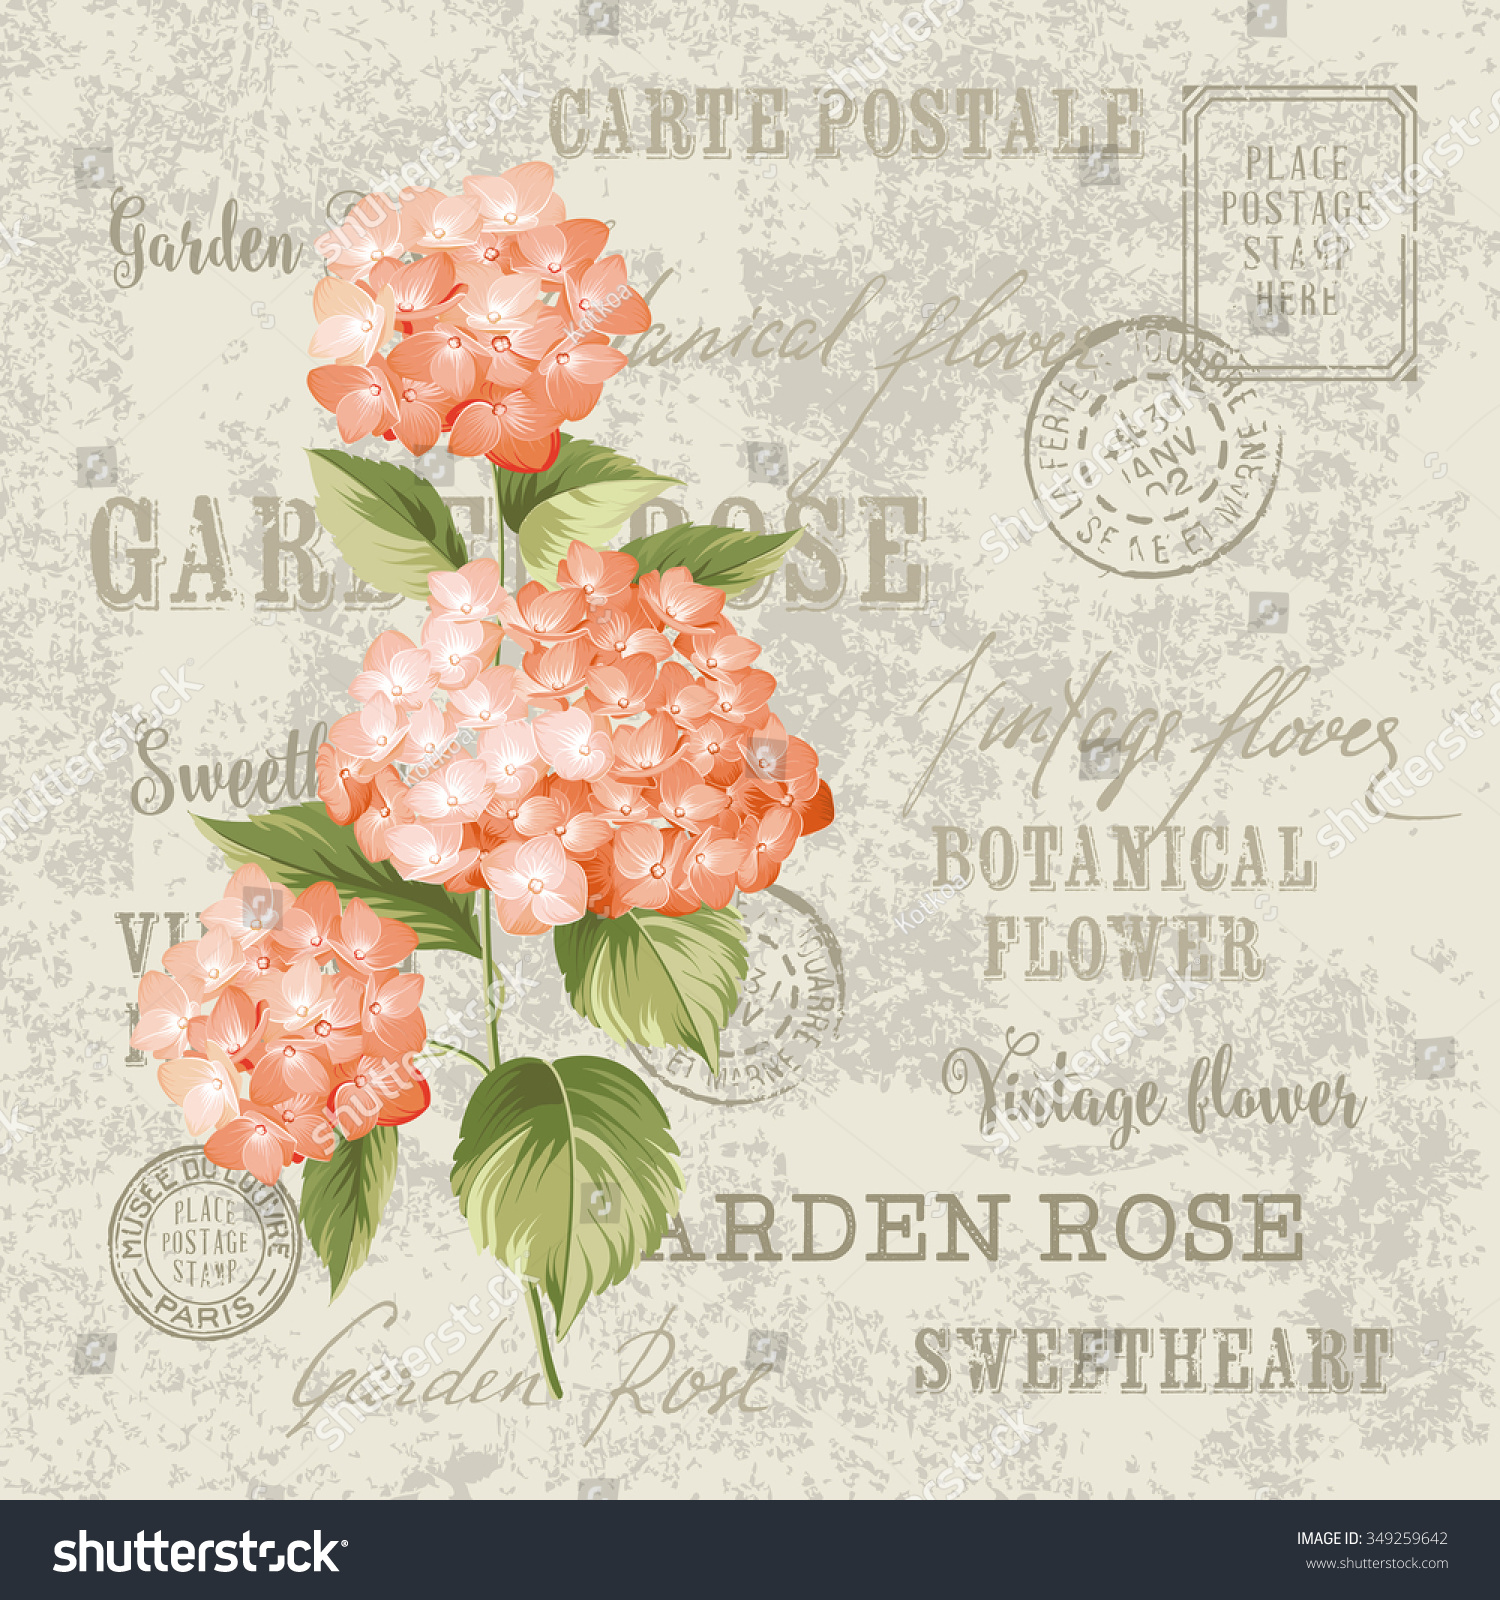 Red flowers design for invitation card template Vintage postcard background vector template for wedding invitation Label with hortensia flowers Vector illustration